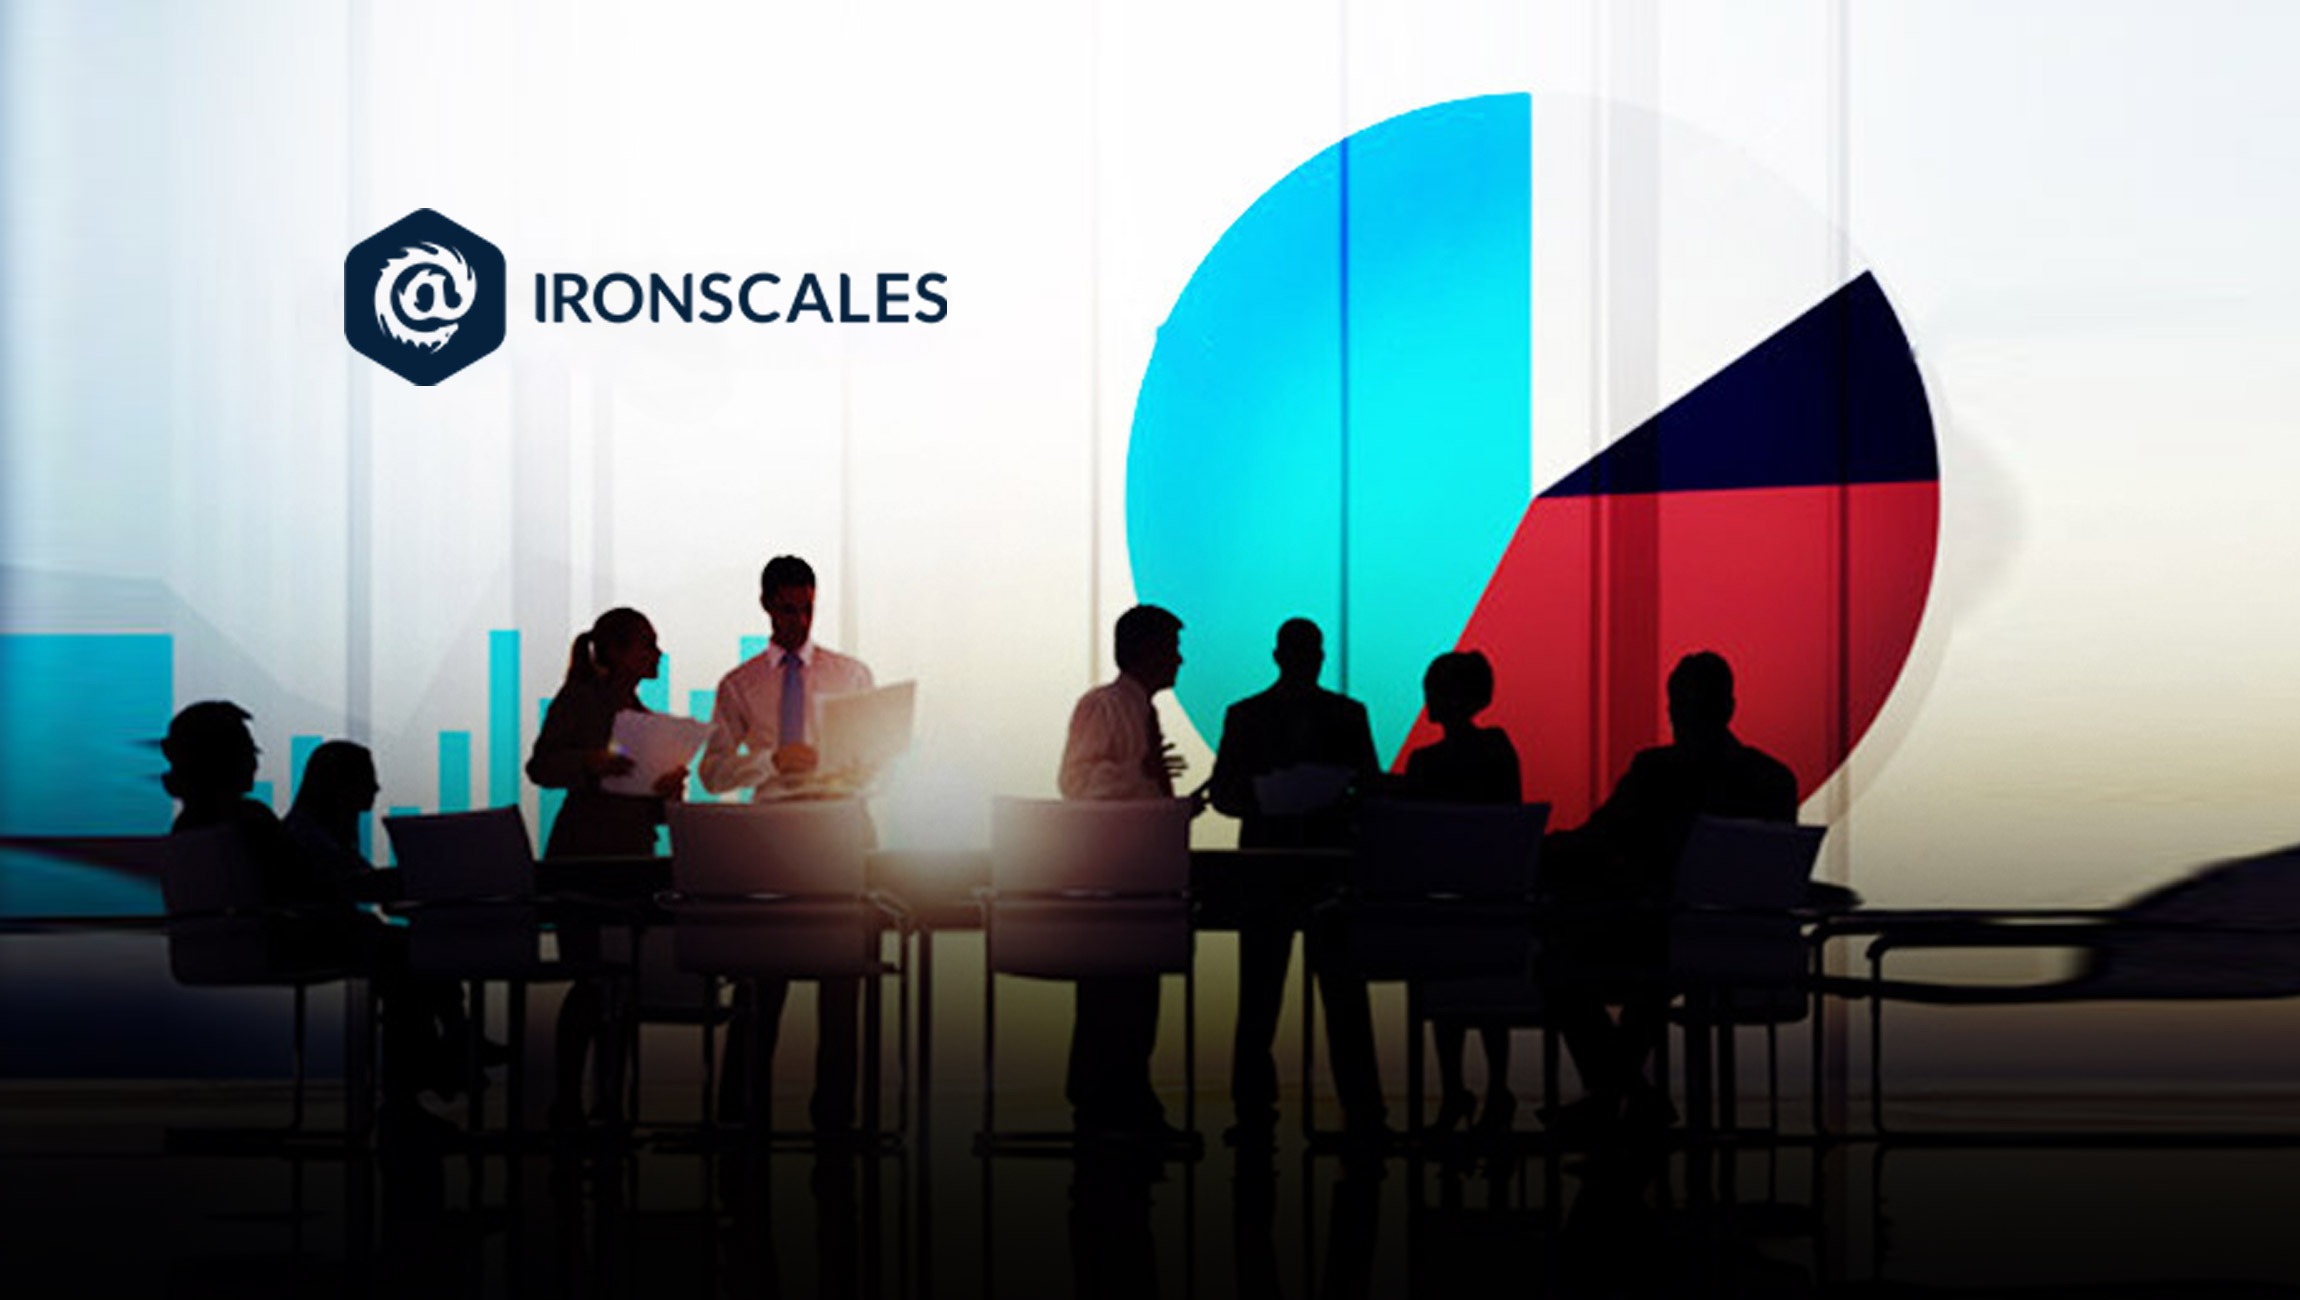 IRONSCALES Achieves Top-Tier Status with Microsoft Co-Sales Team